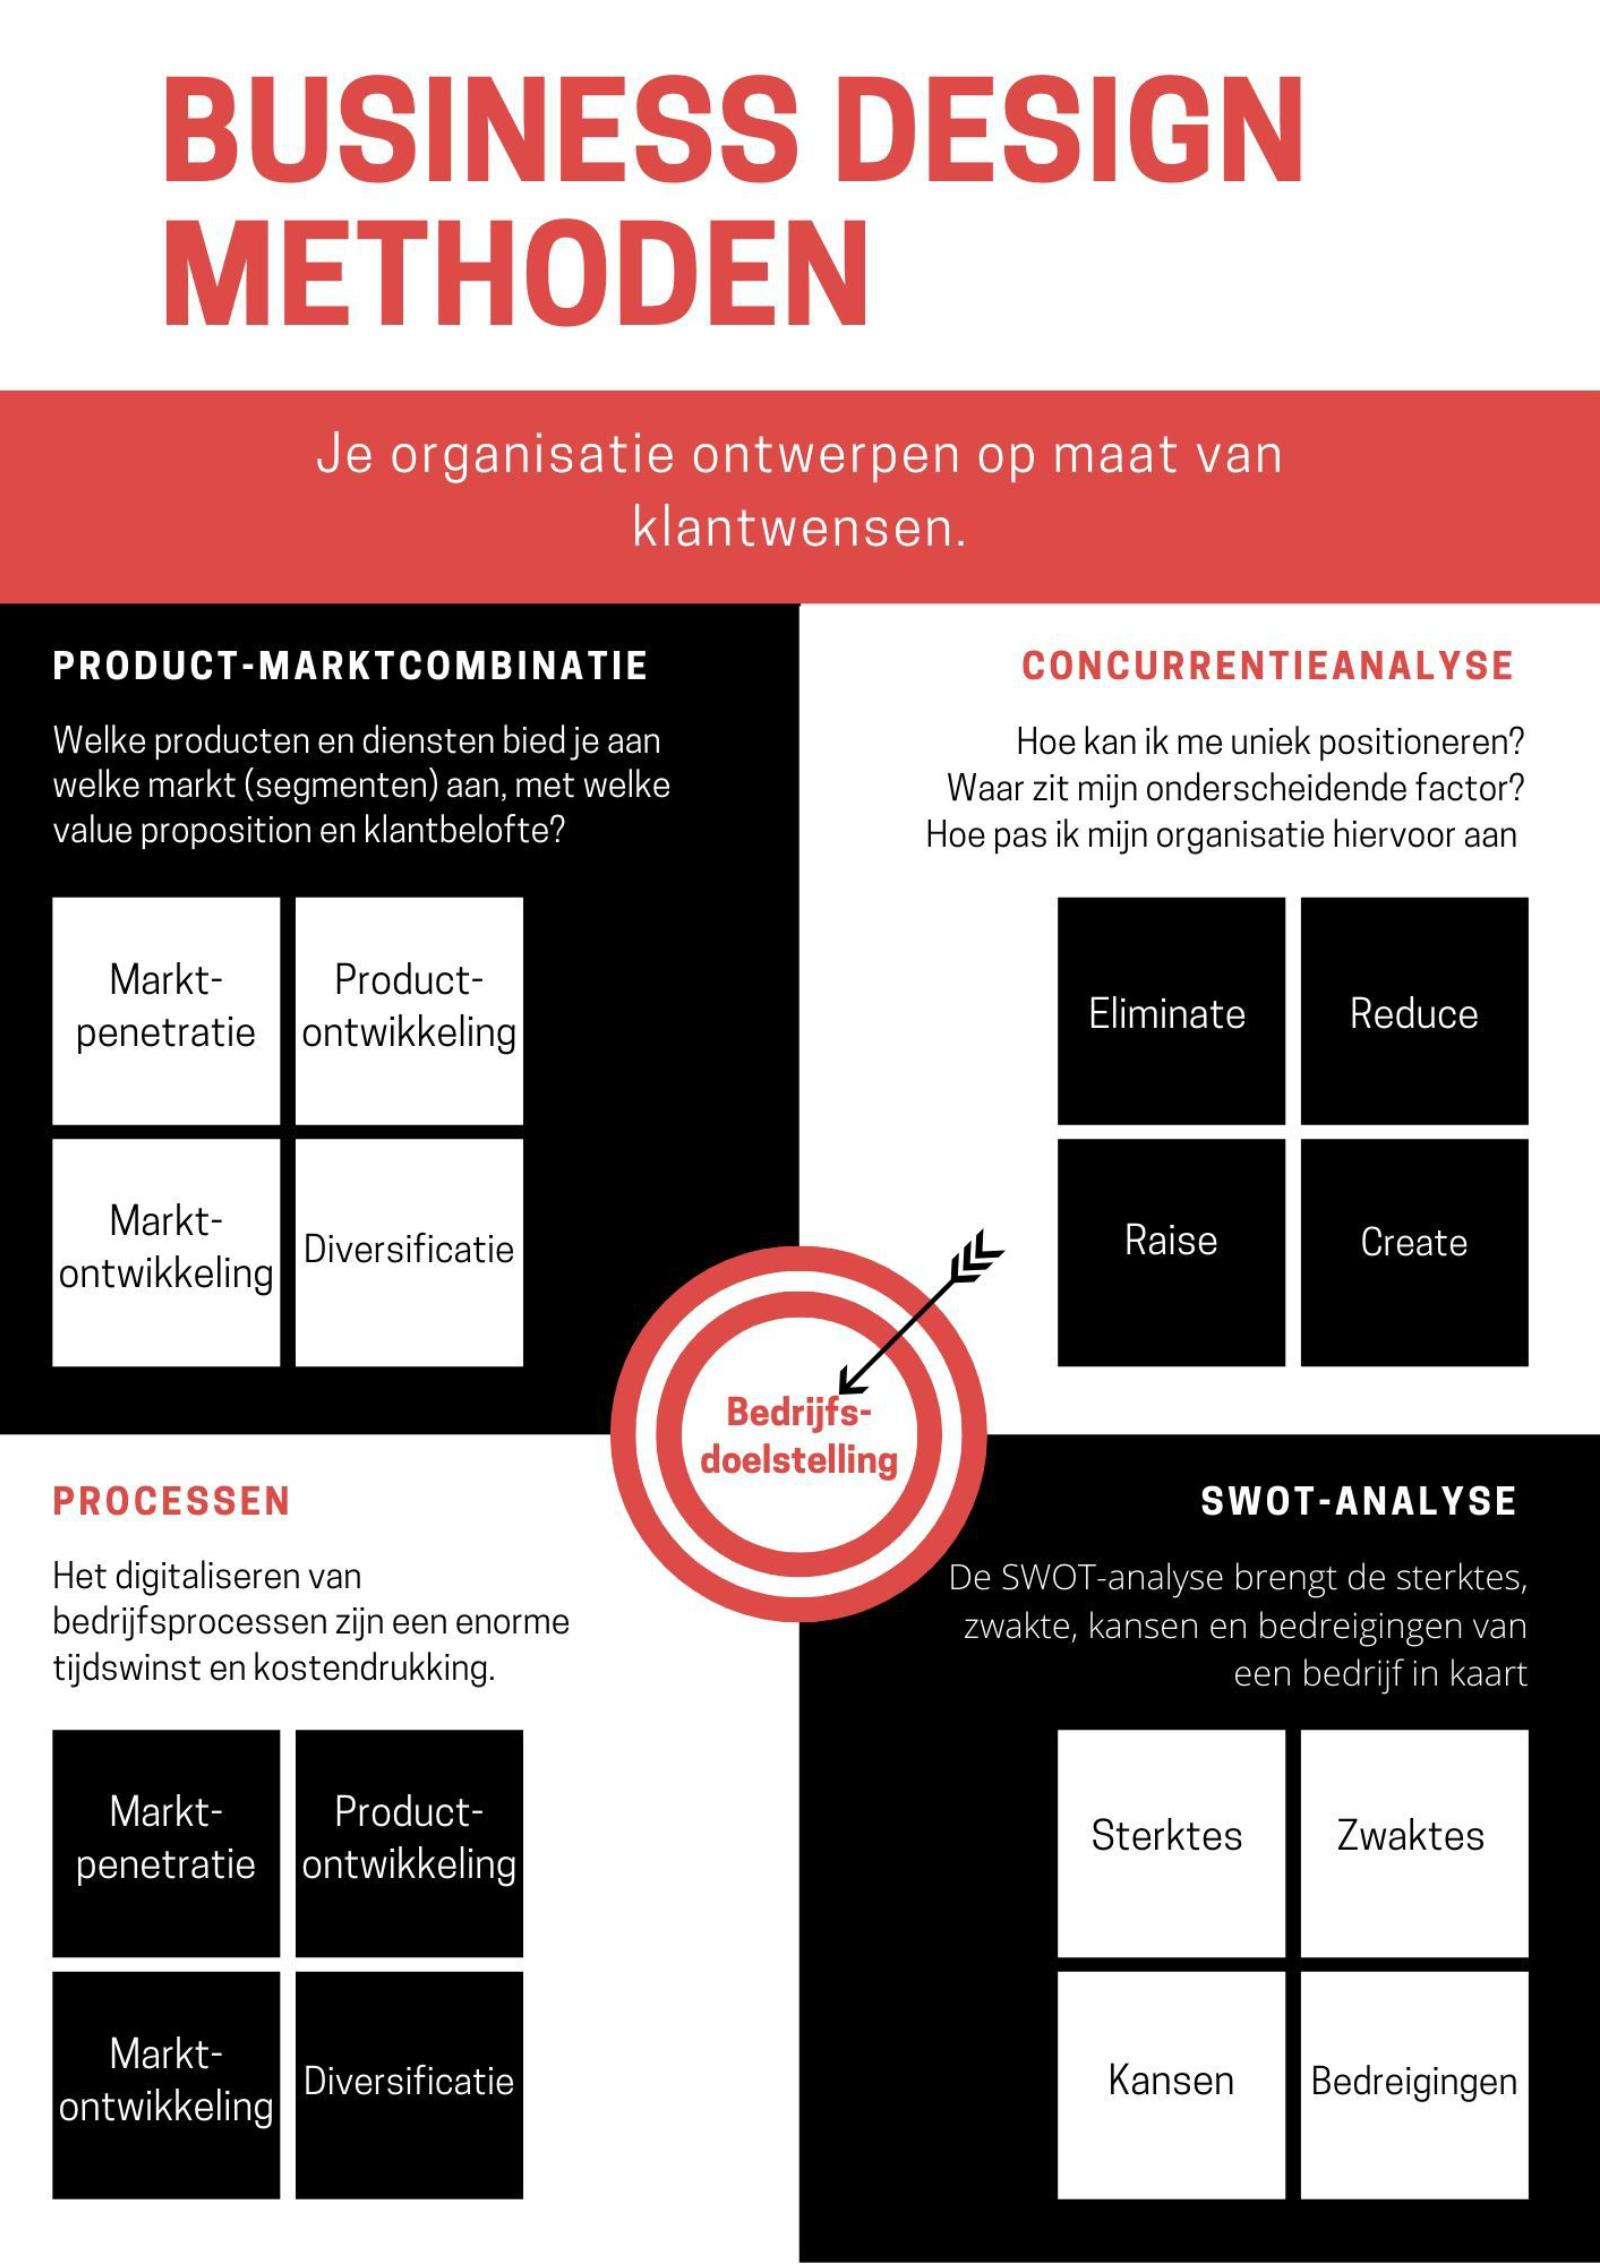 Business design methoden